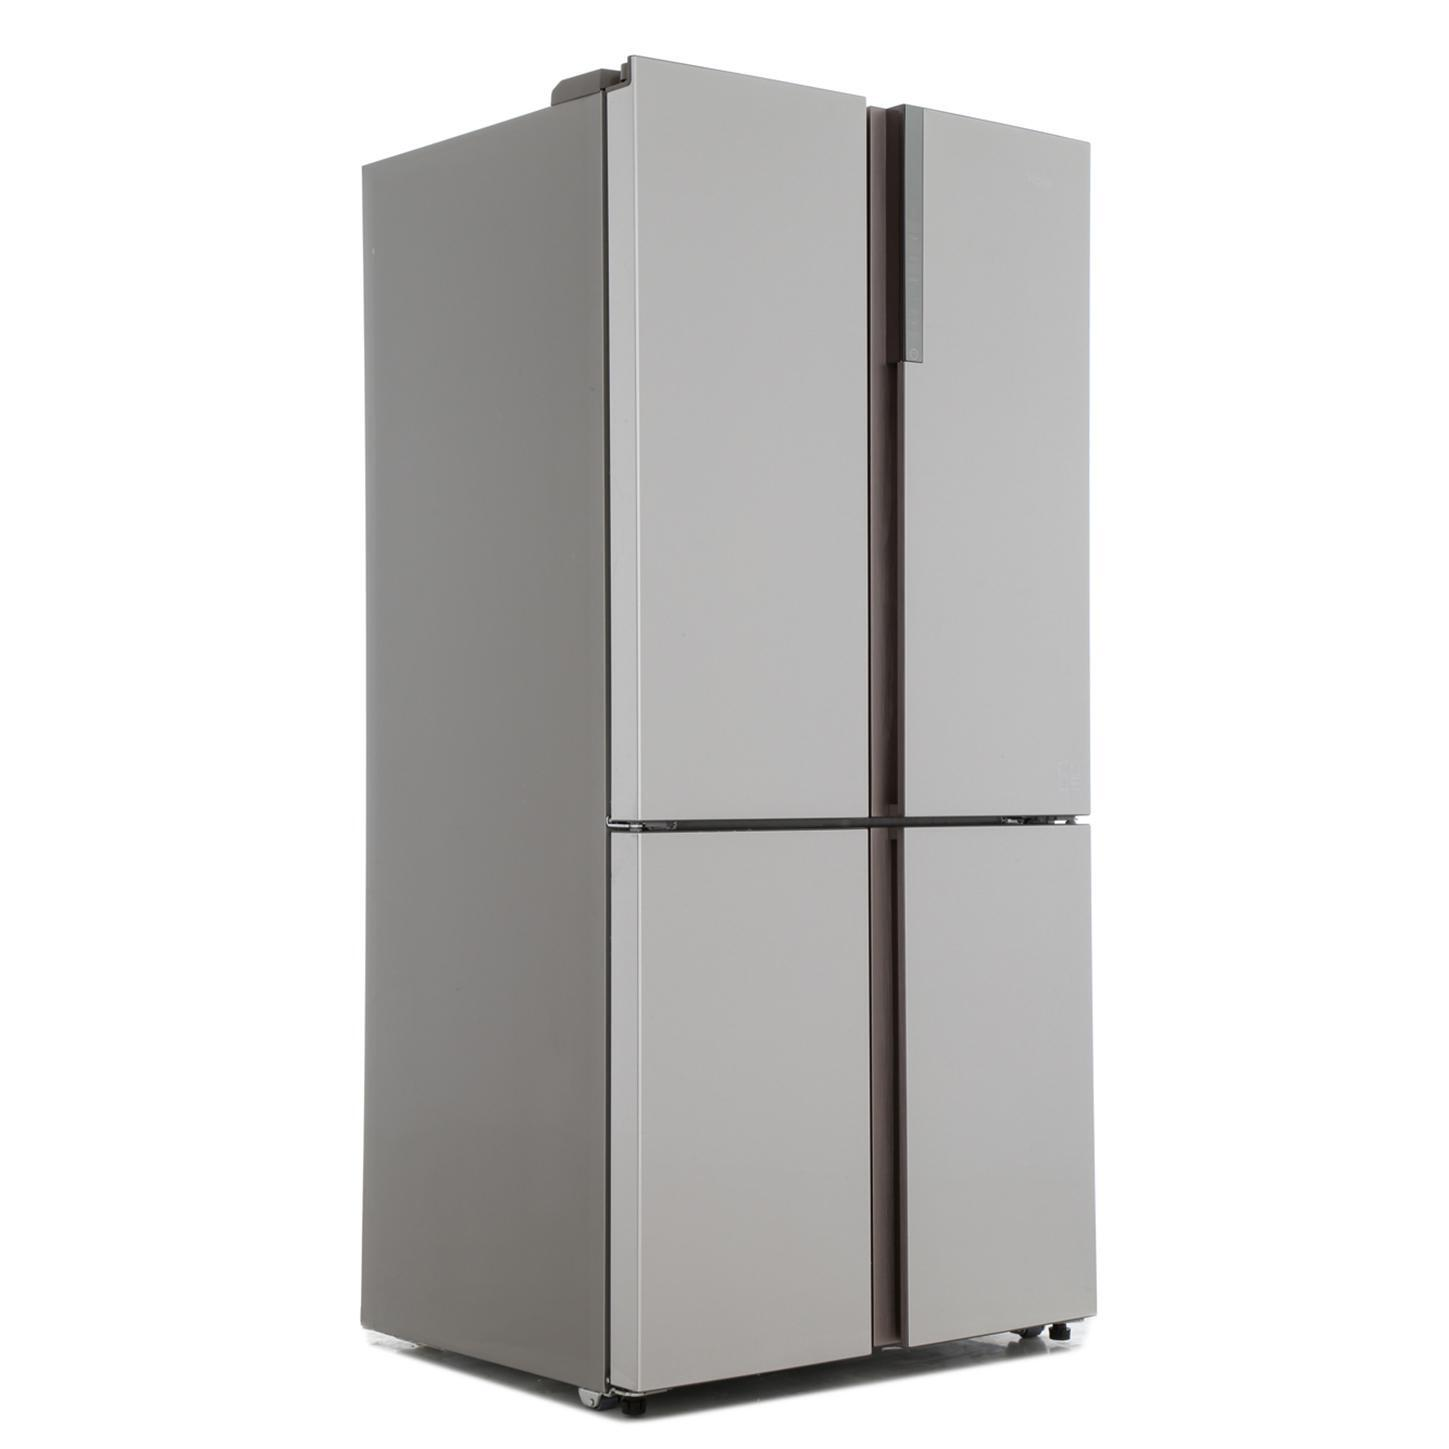 buy haier htf 610dm7 american fridge freezer stainless steel effect marks electrical. Black Bedroom Furniture Sets. Home Design Ideas